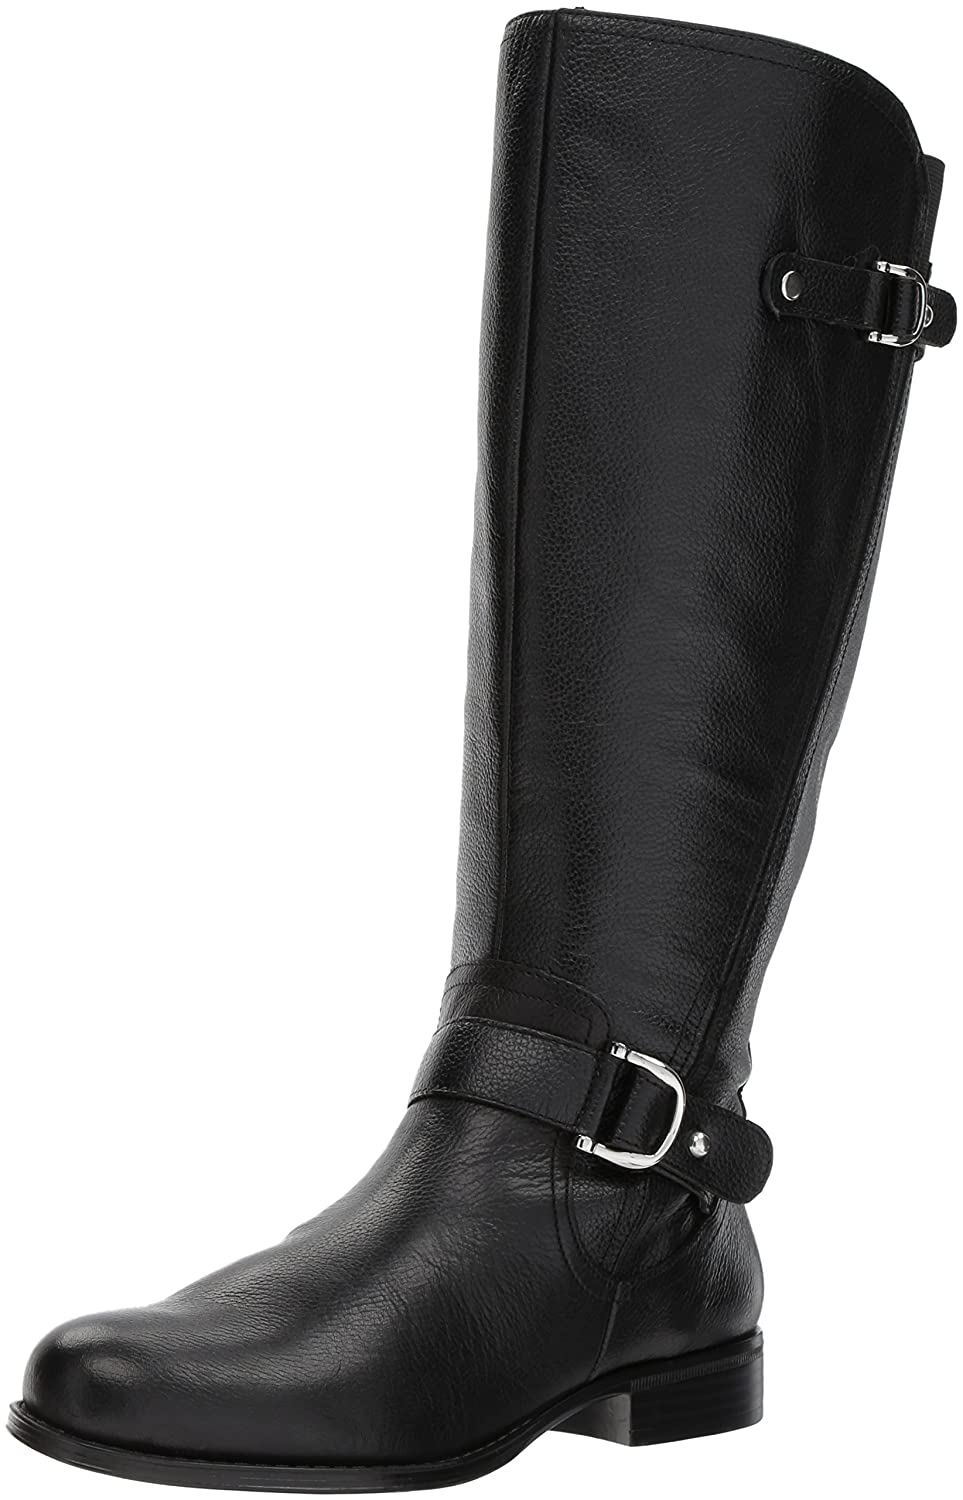 Naturalizer Women's Jenelle Wc Riding Boot B06XC2MST6 9.5 2W US|Black